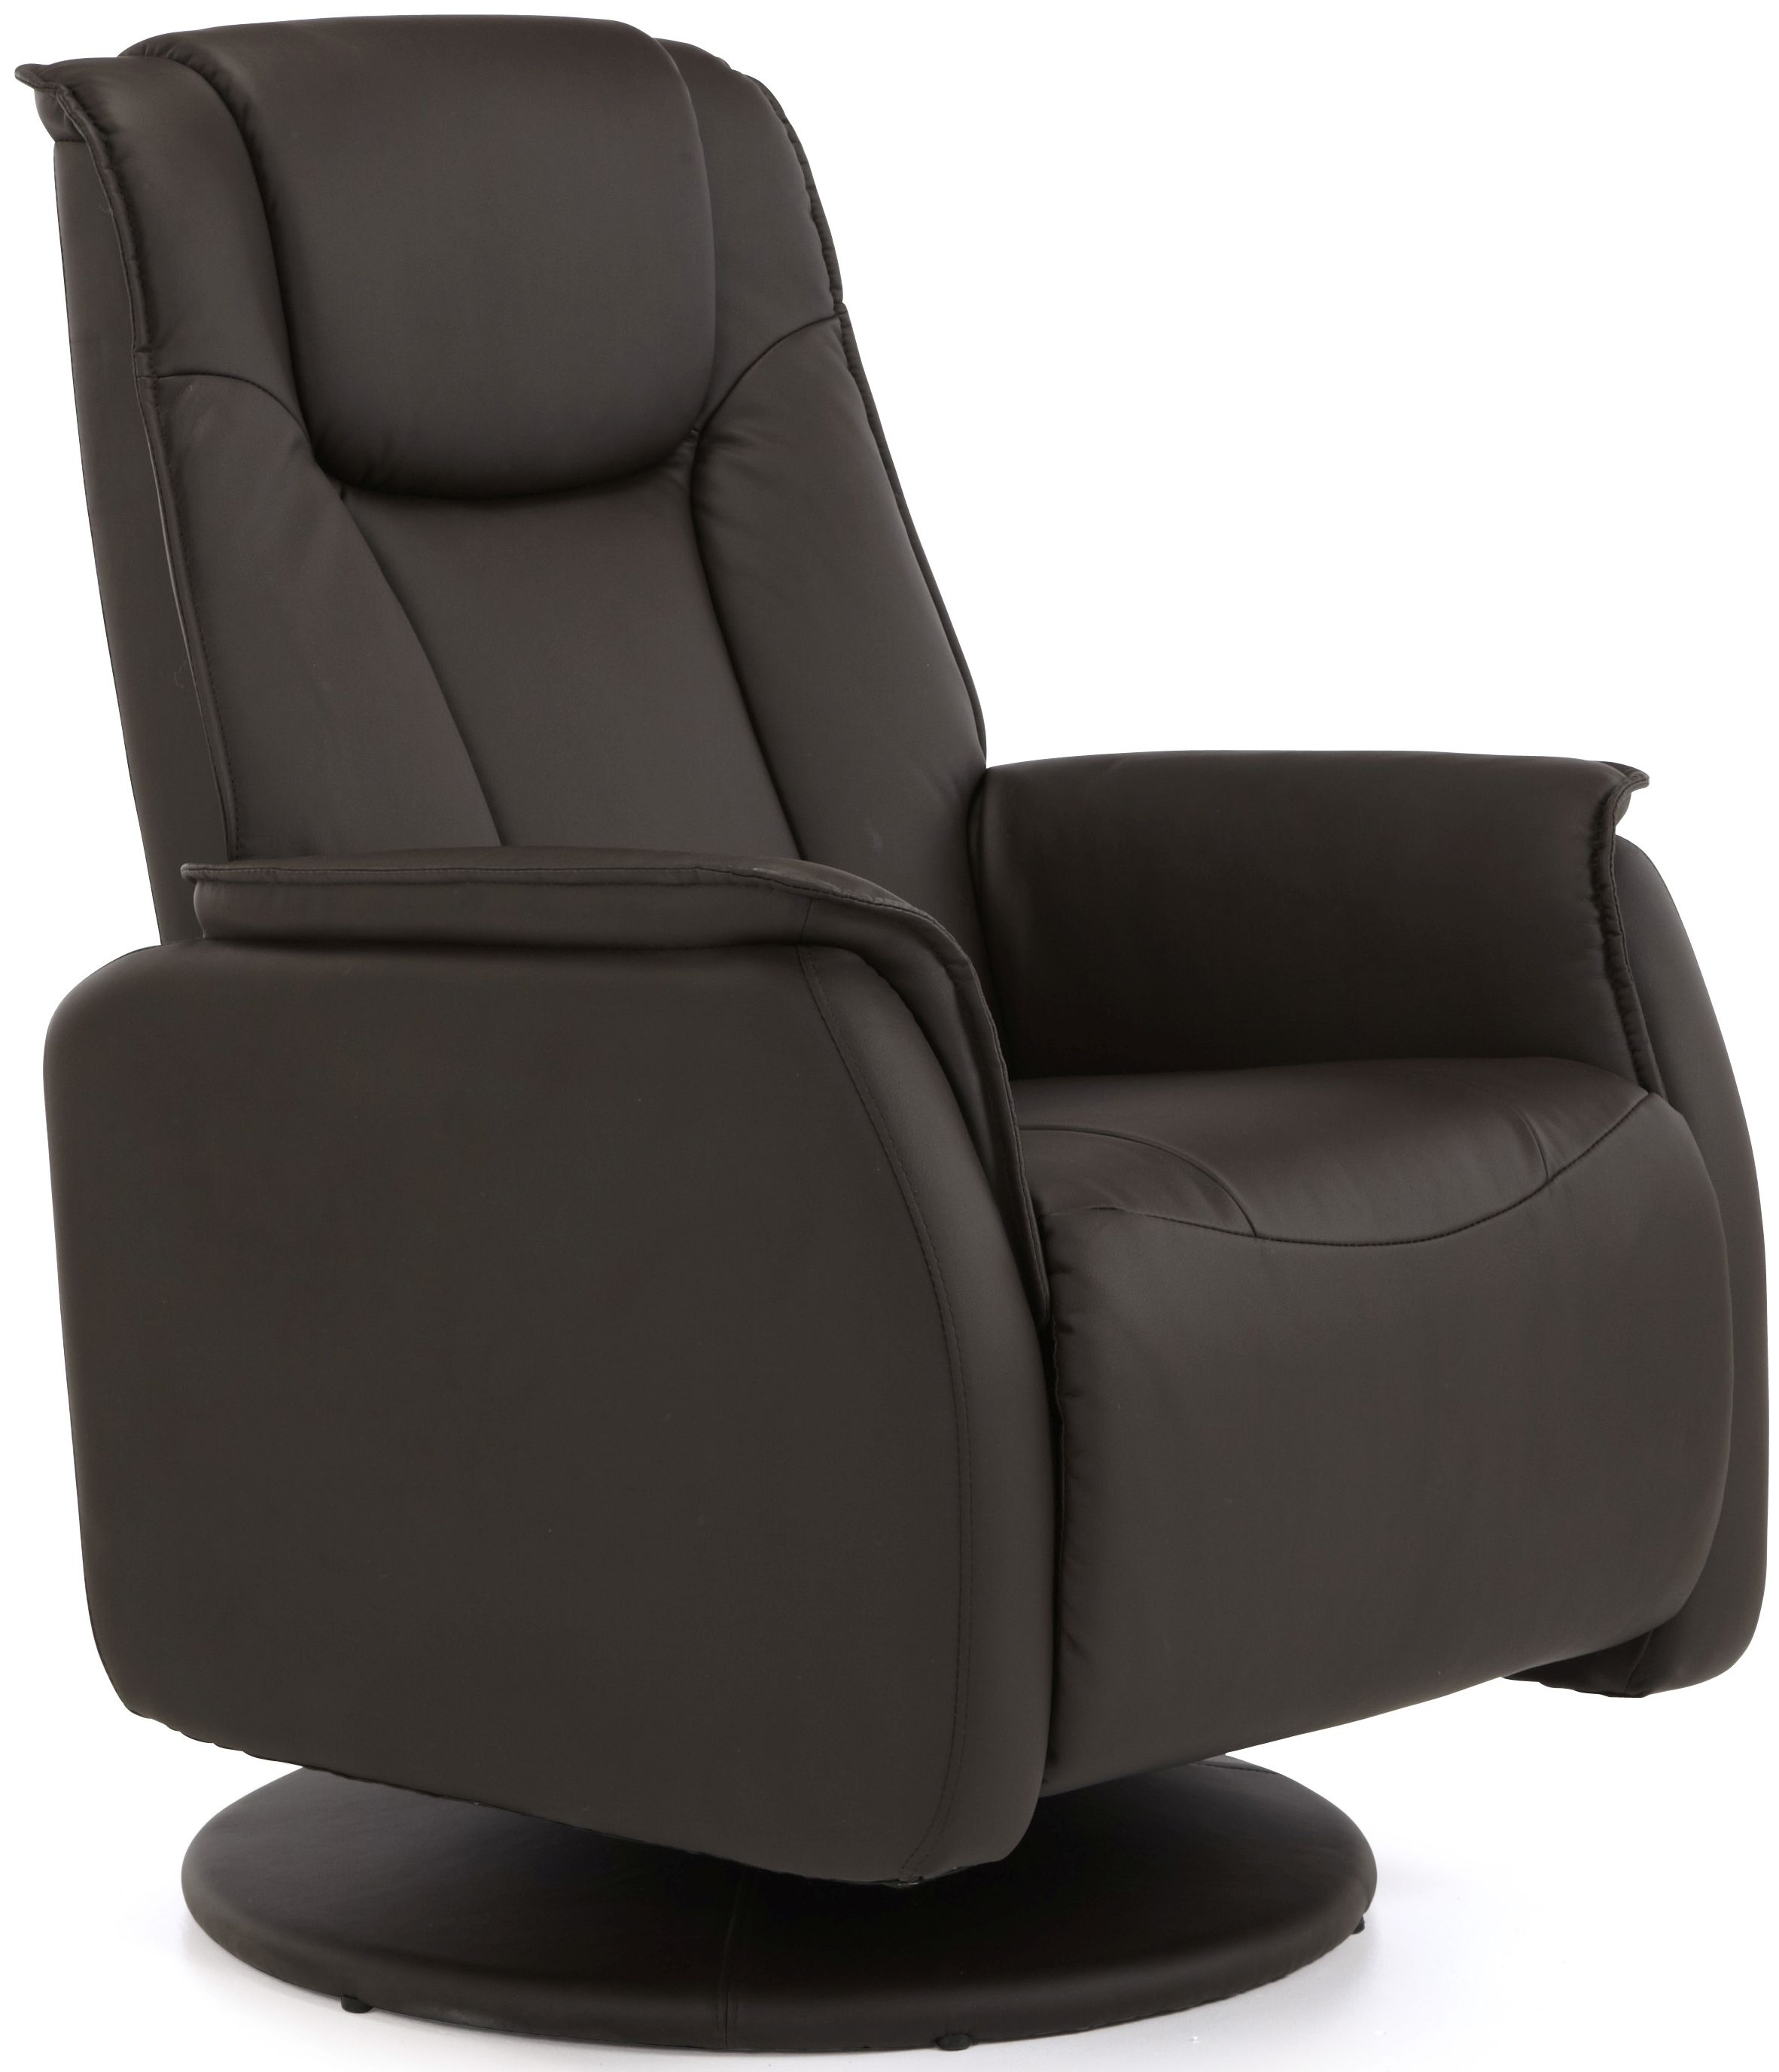 Serene Tonsberg Brown Faux Leather Recliner Chair